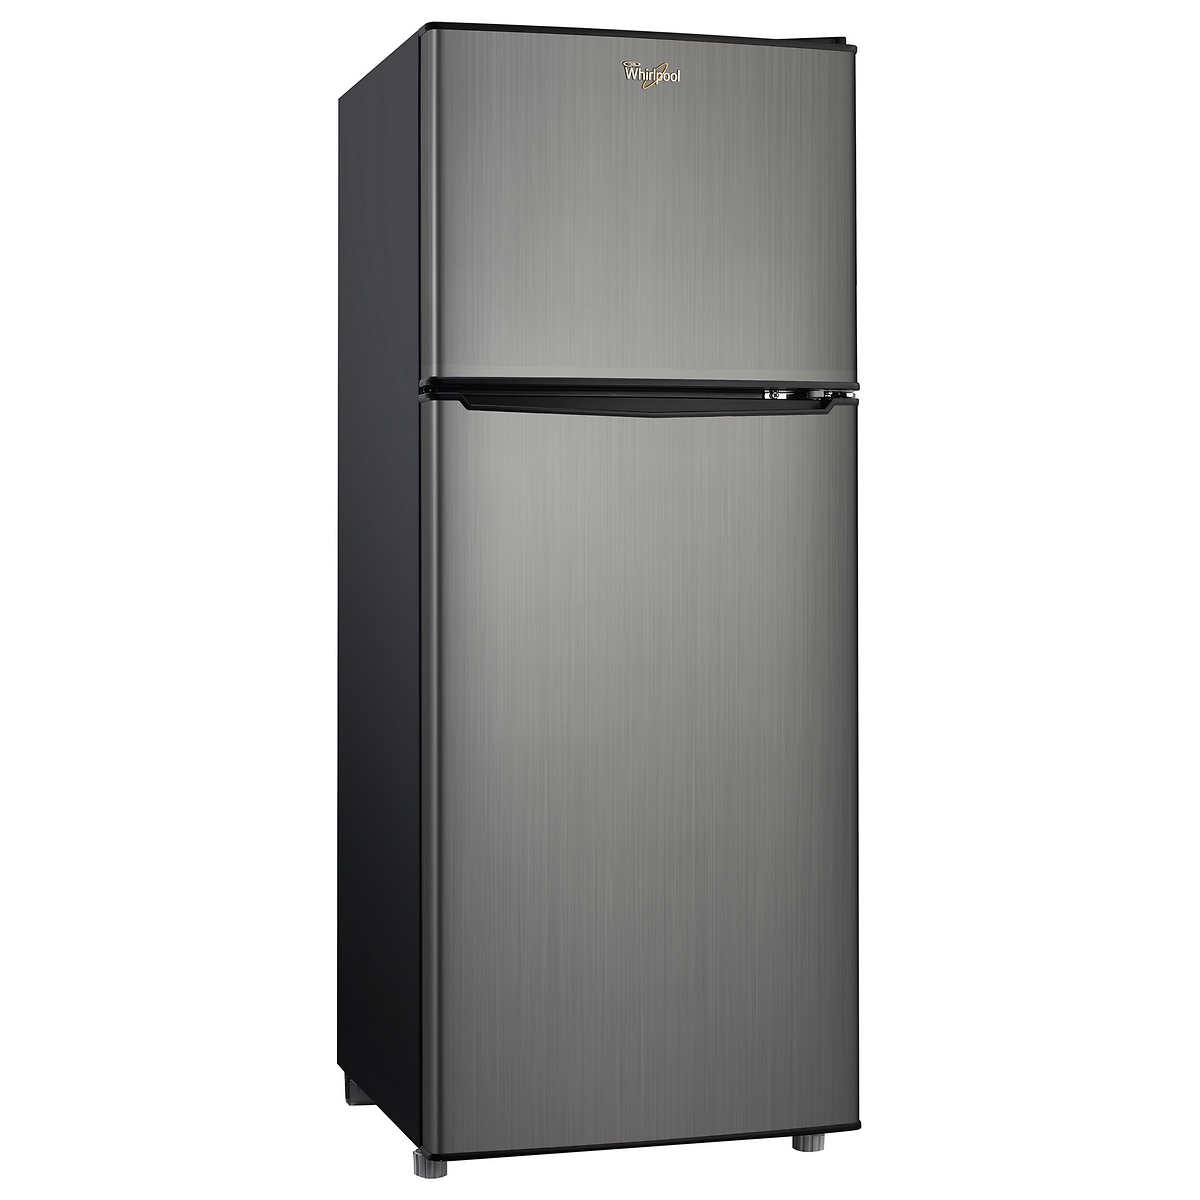 Whirlpool white ice costco canada - Whirlpool 4 6 Cu Ft Top Mount Refrigerator With Stainless Steel Look